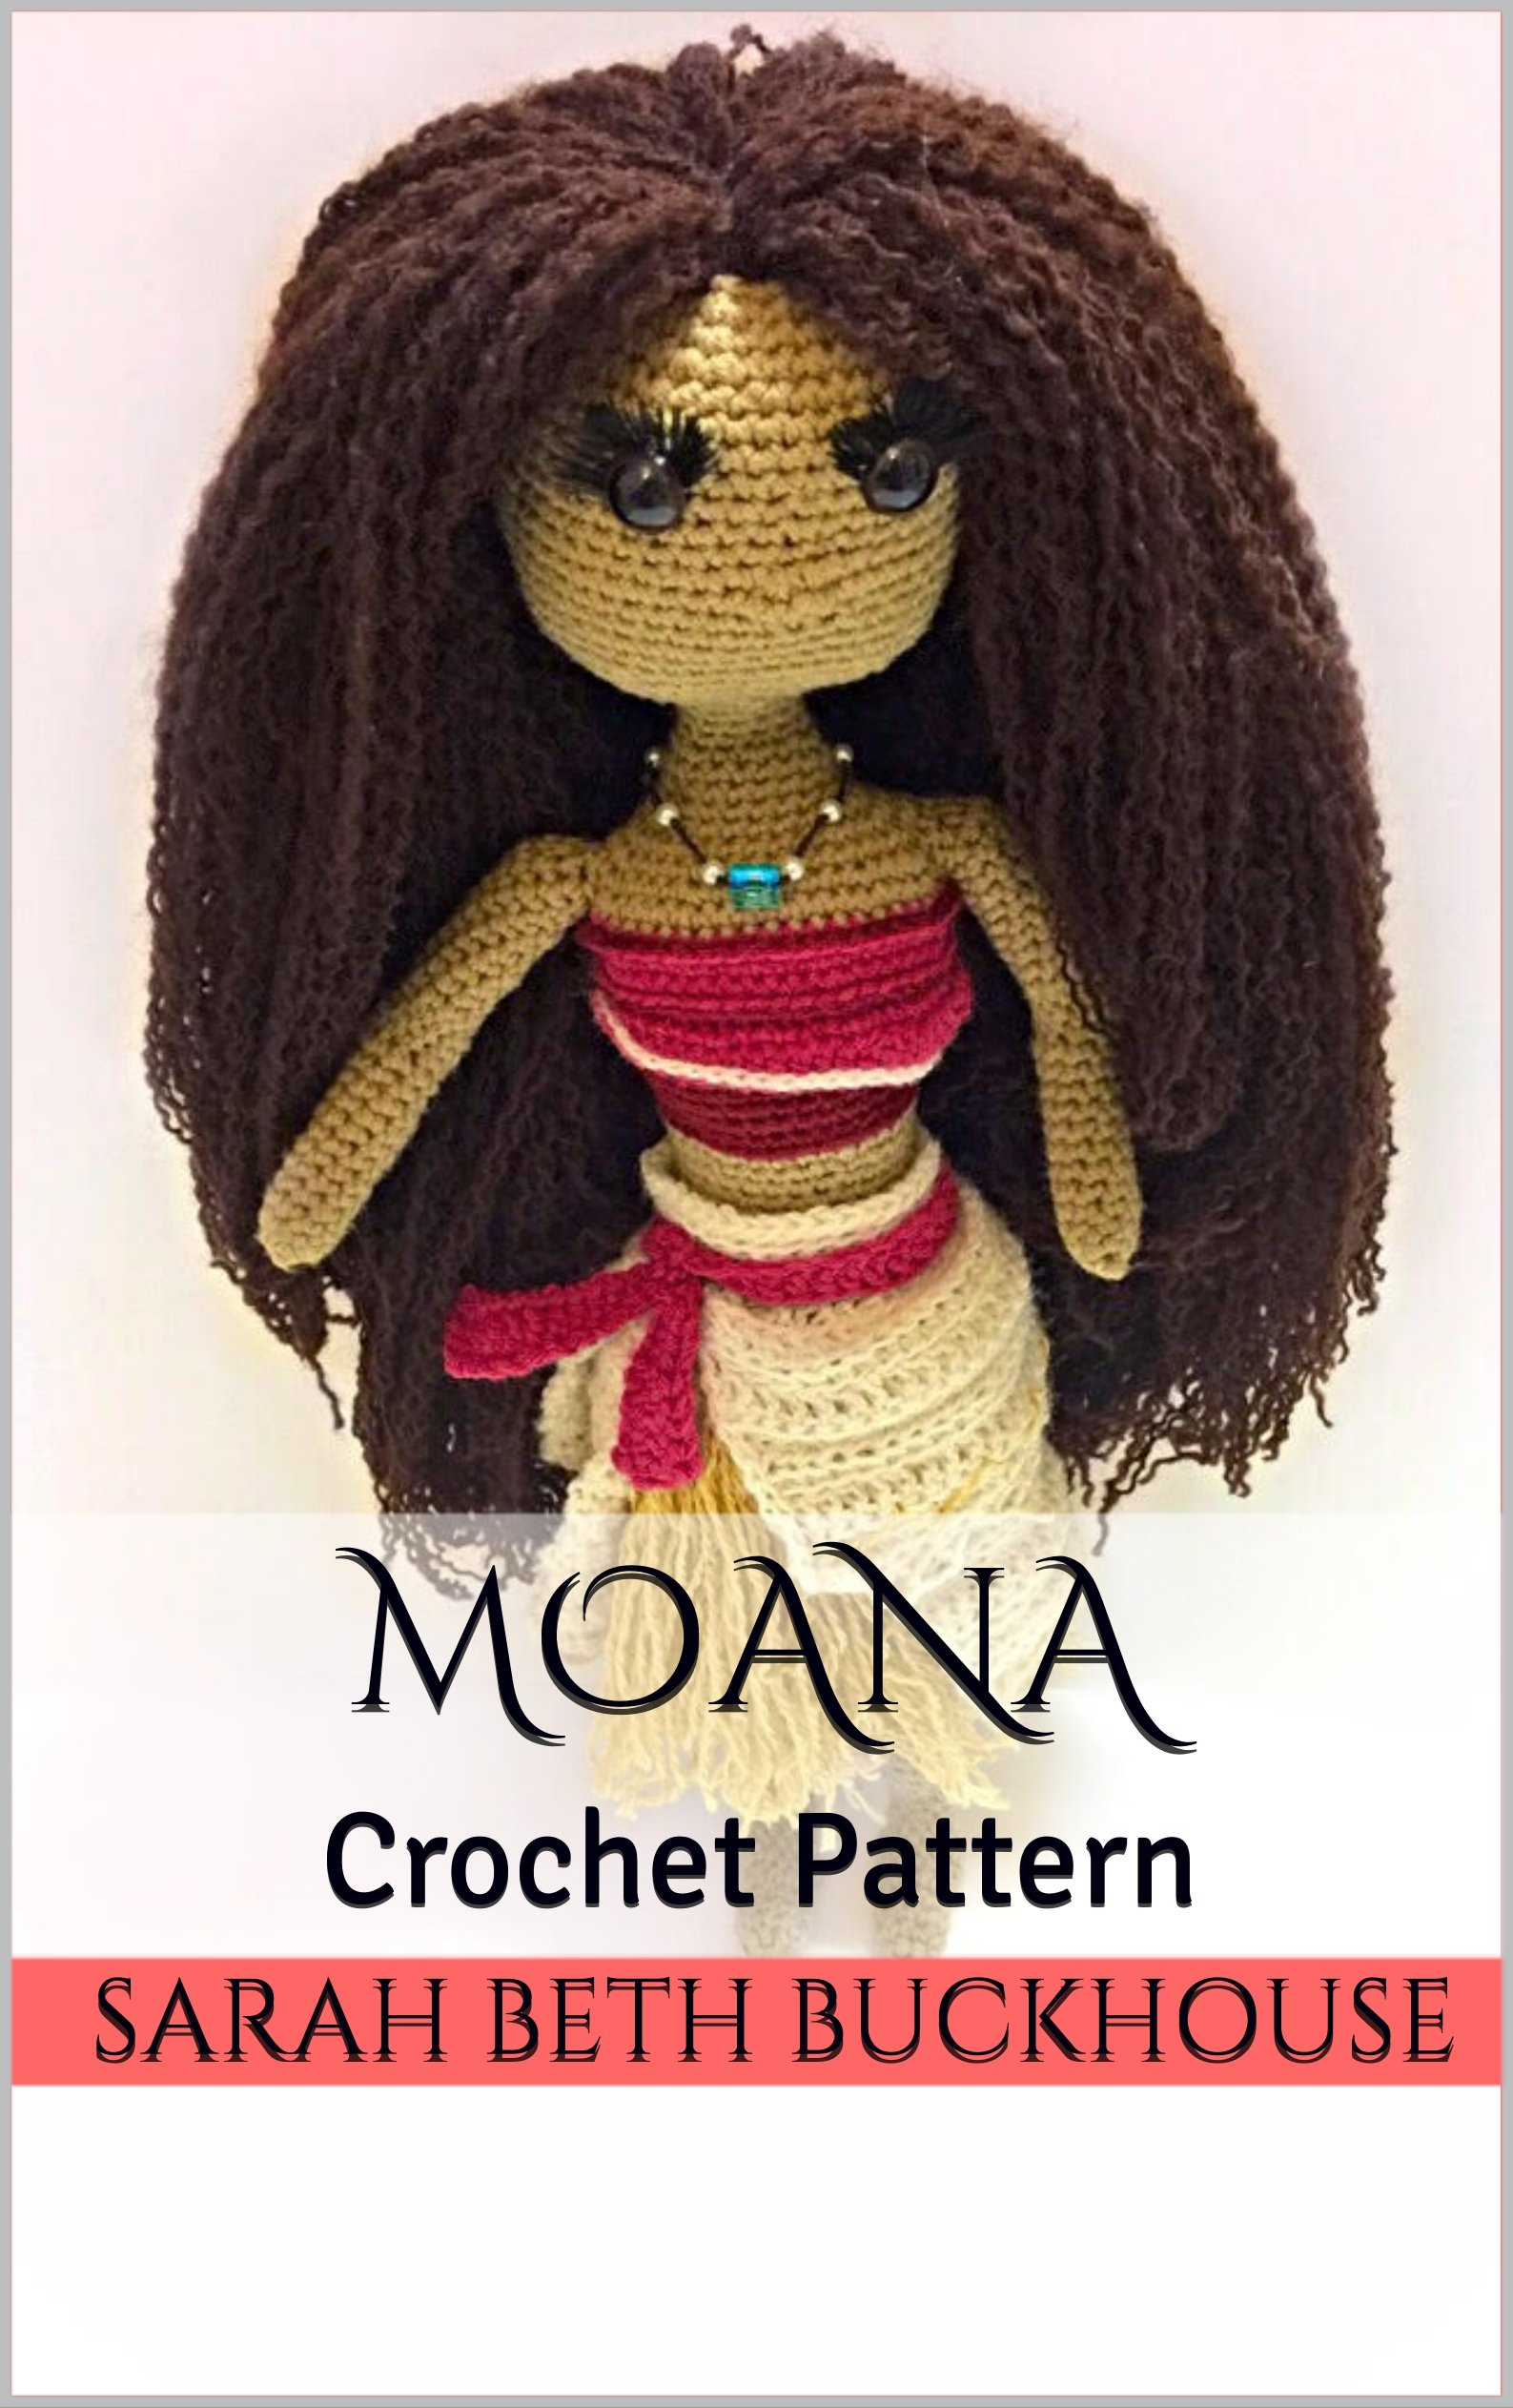 Shop Disney Princess Crocheted Doll Patterns on Etsy | POPSUGAR Family | 2525x1587